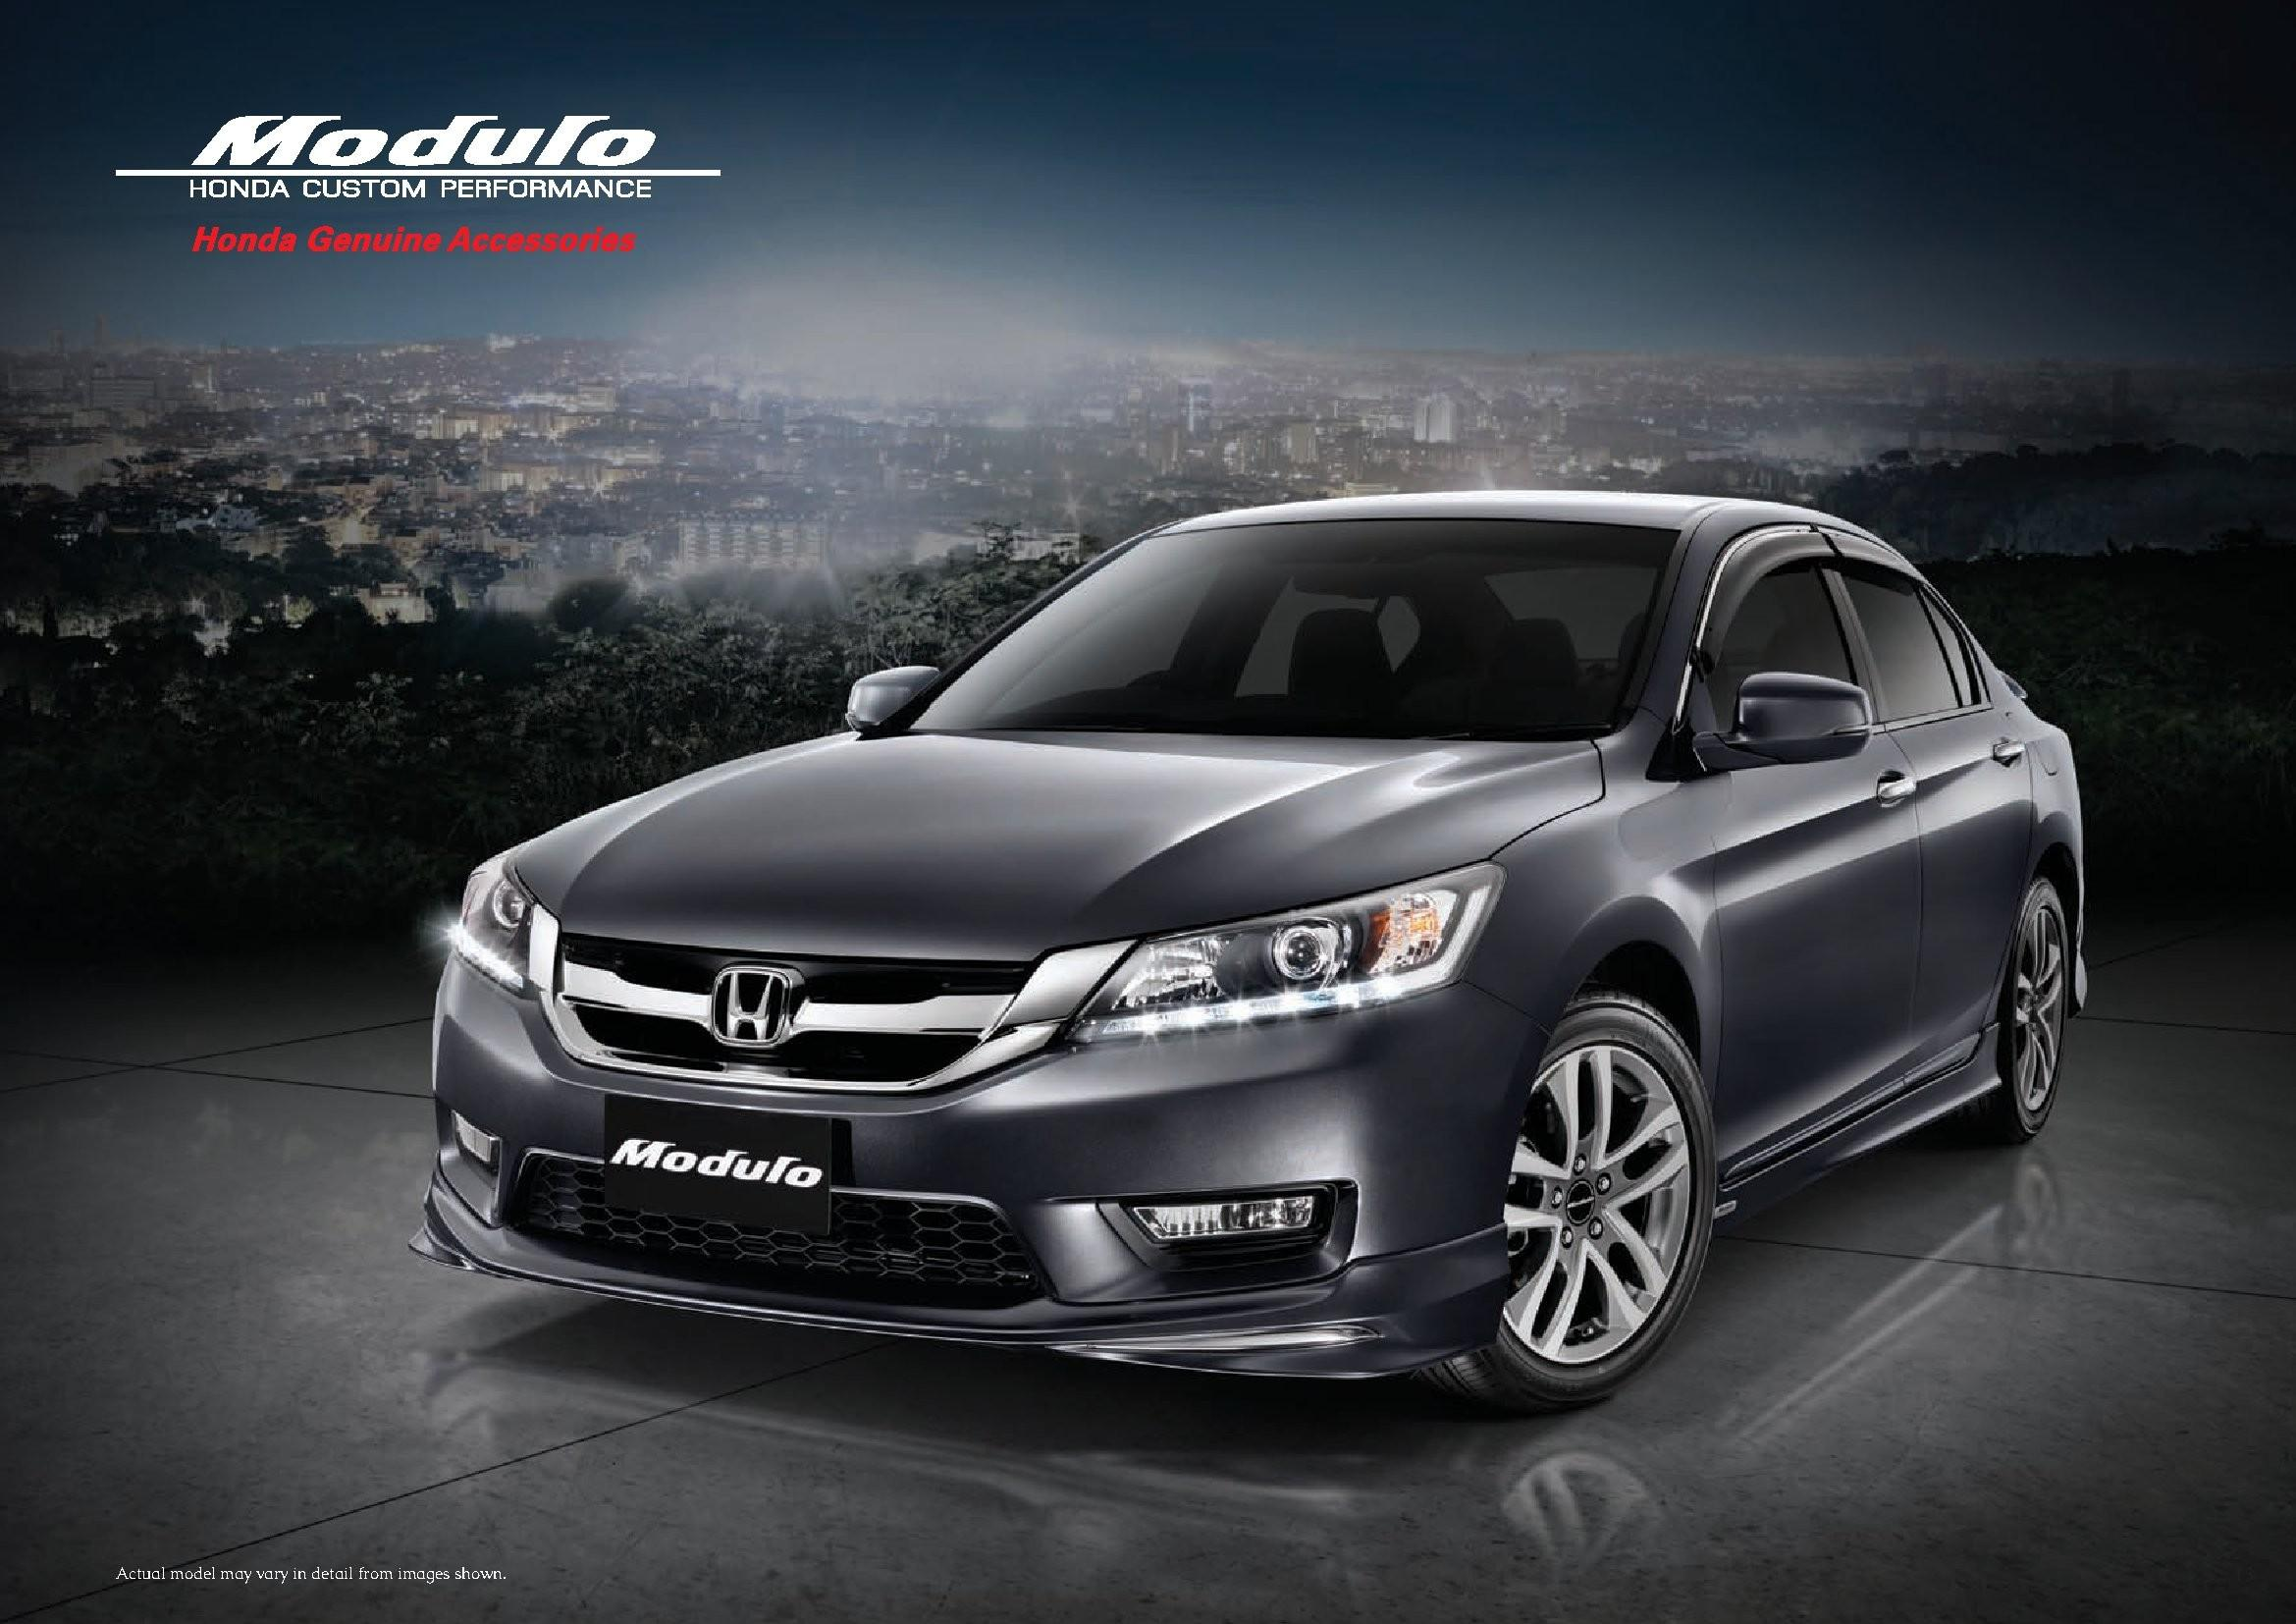 Honda Accord Wallpapers HD Wallpaper Wiki Backgrounds Free Download ...